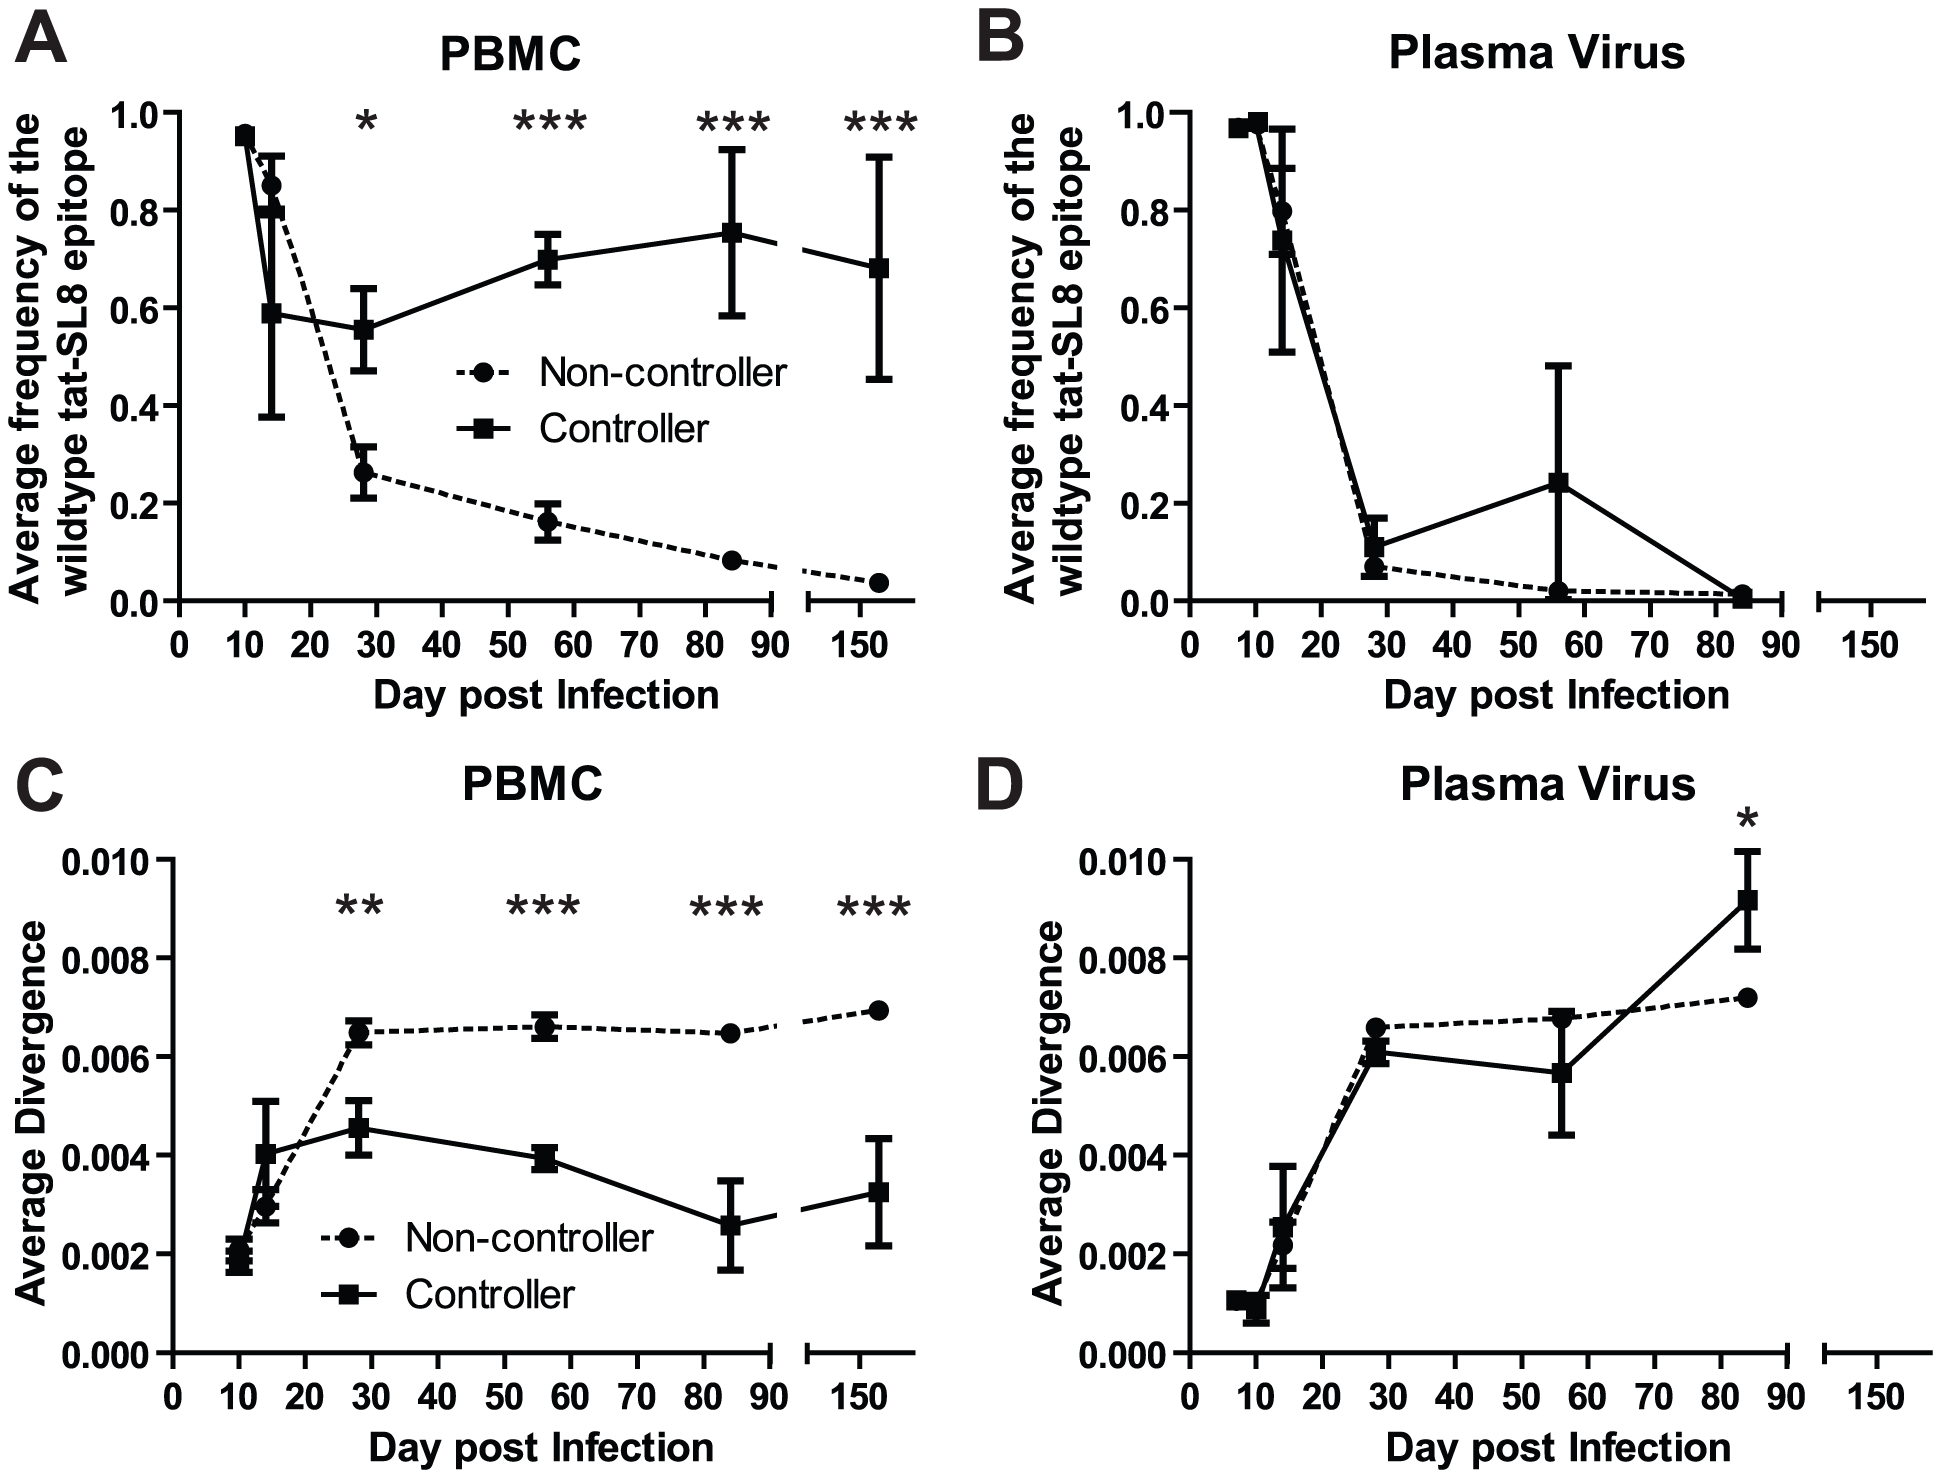 Control of SIVmac239 replication was associated with significantly higher levels of cell-associated viral DNA bearing the wildtype tat-SL8 sequence in PBMC but not in plasma viral RNA.